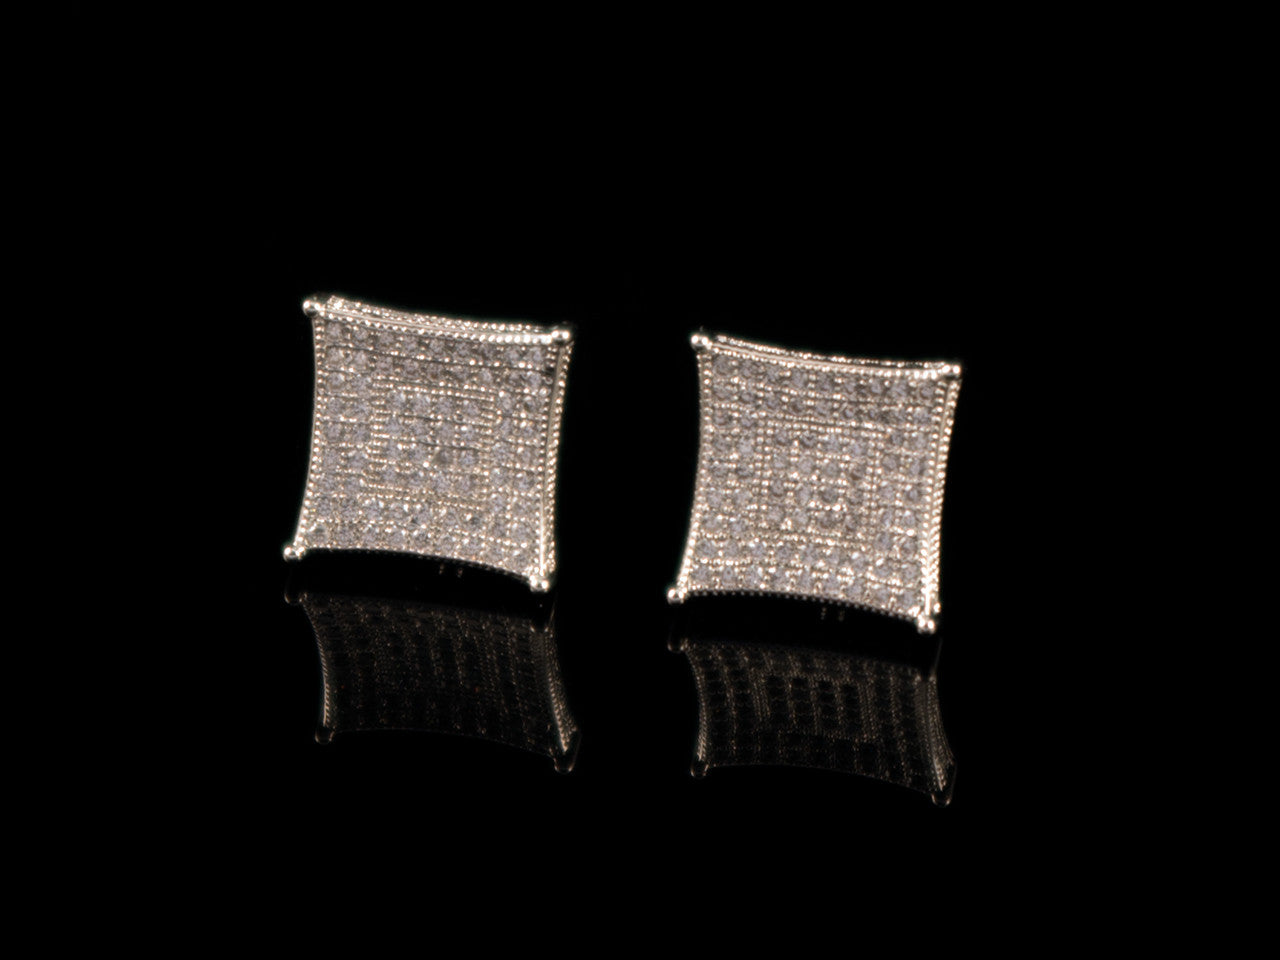 18K White Gold Paved Curved Square Earrings